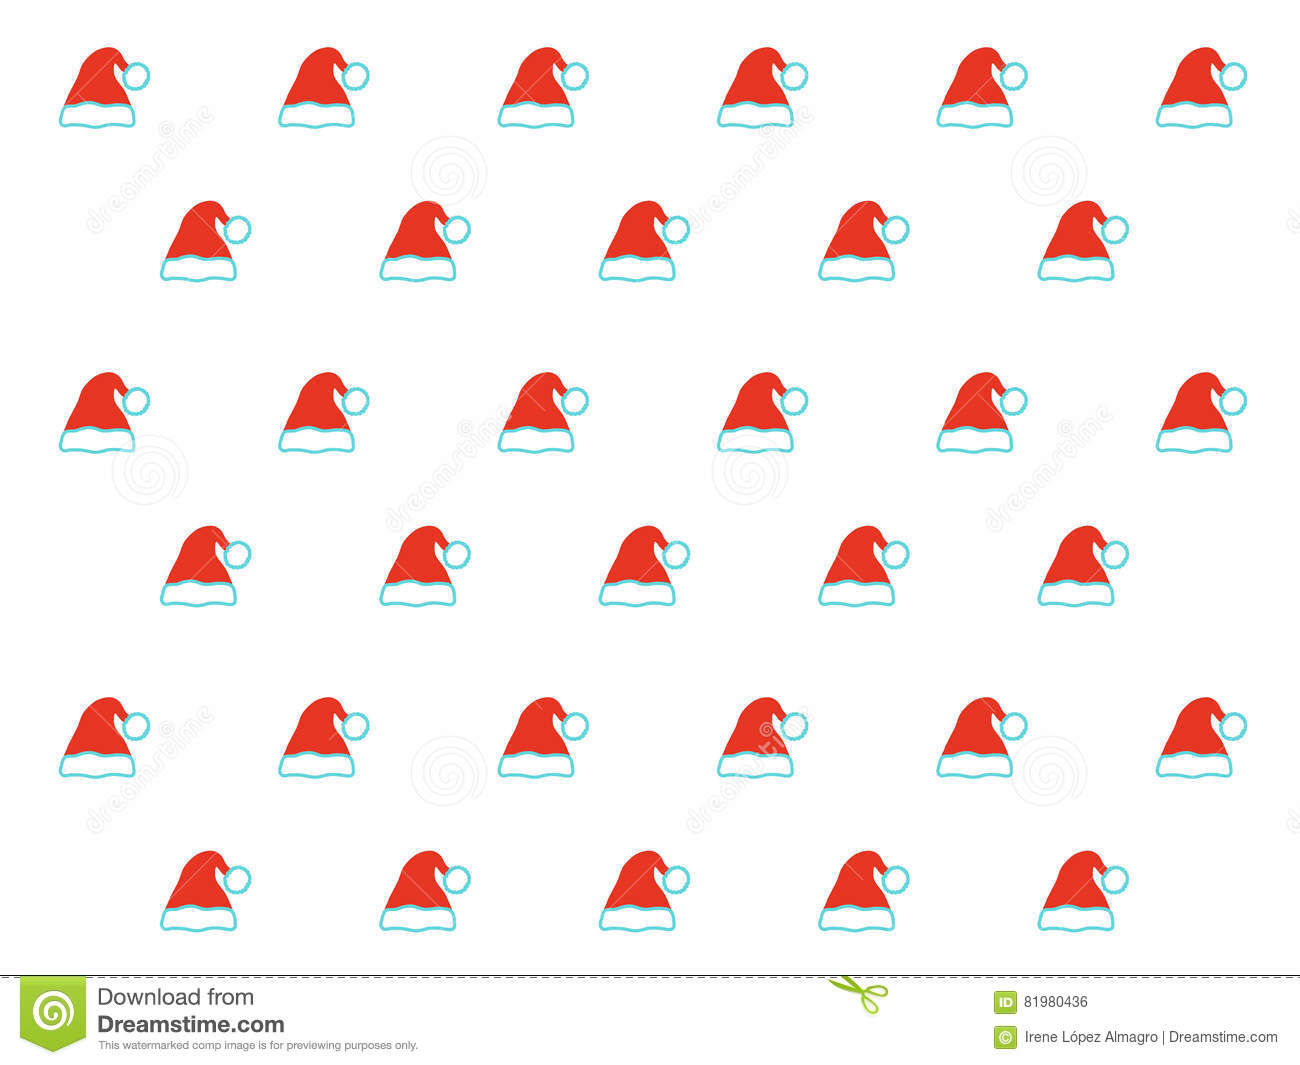 1af381cc216 Santa Claus hat pattern stock vector. Illustration of white - 81980436